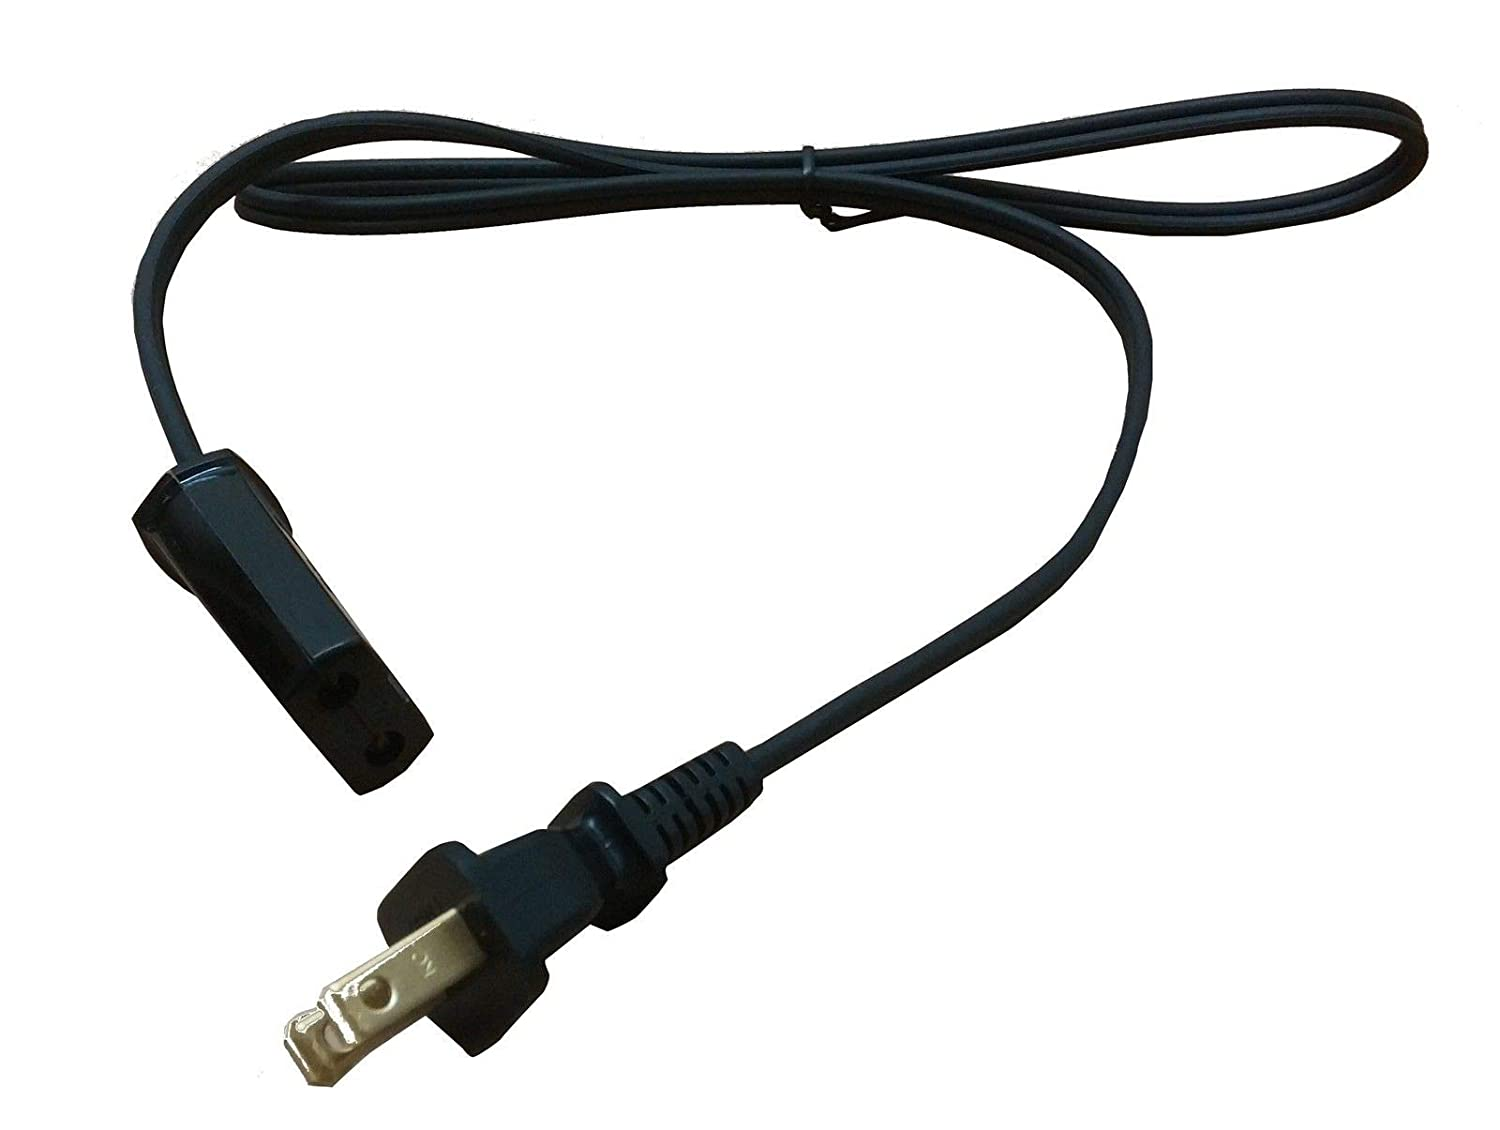 New Replacement 1/2 inch Spacing 3ft Long 36 '' Plug Wire Power Cord For Farberware & Presto Super Speed Coffee Pot Percolator For West Bend Slow Cooker 84114 84124